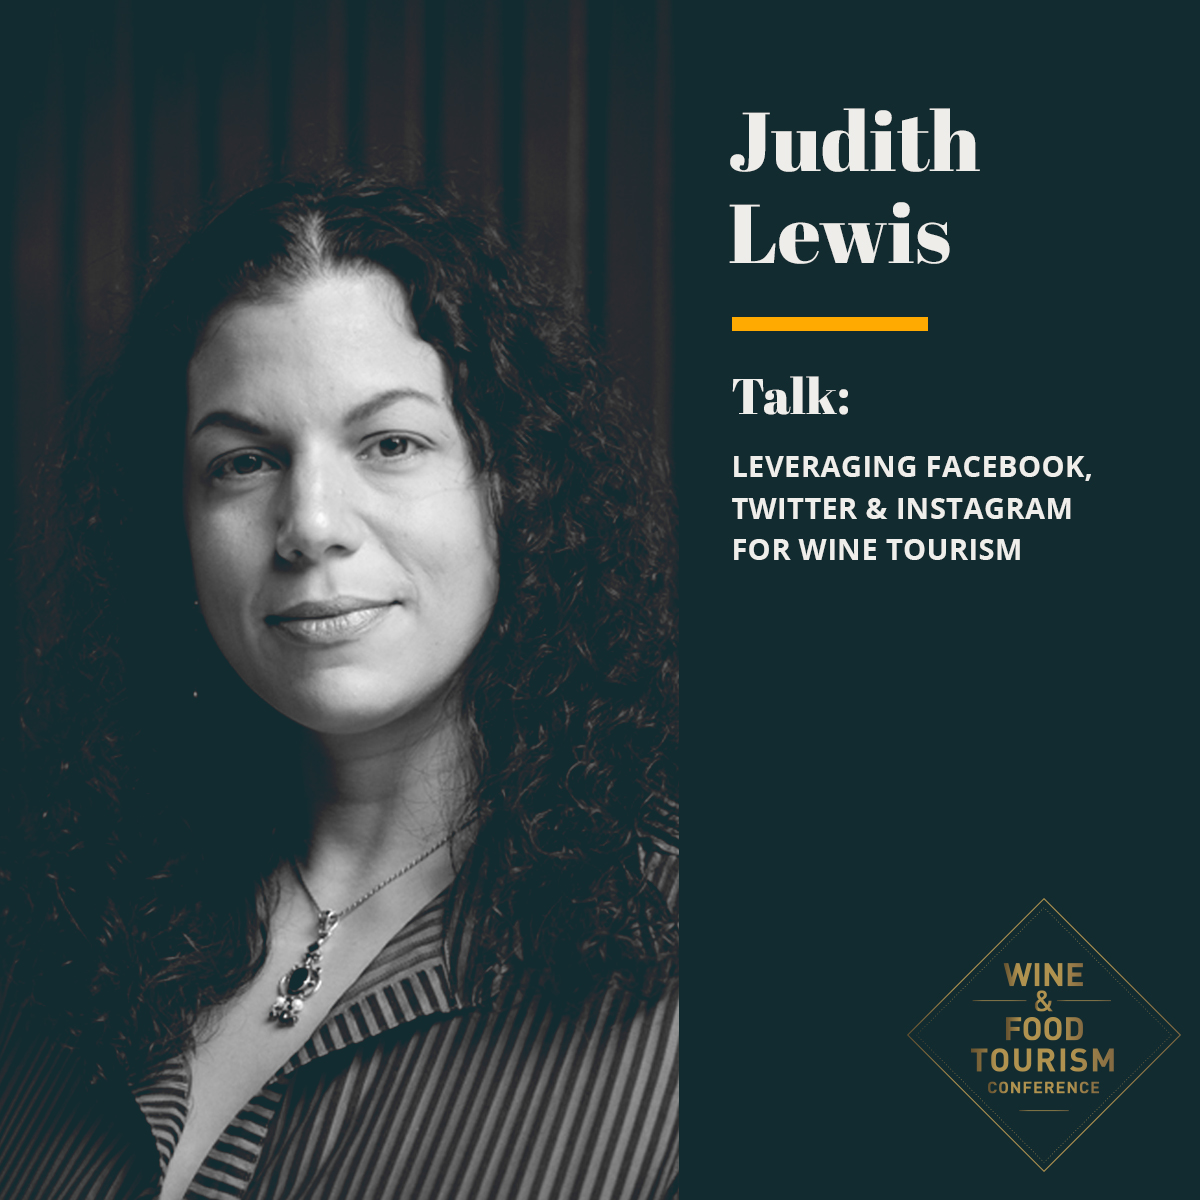 Judith Lewis Wine & Food Tourism Conference Event